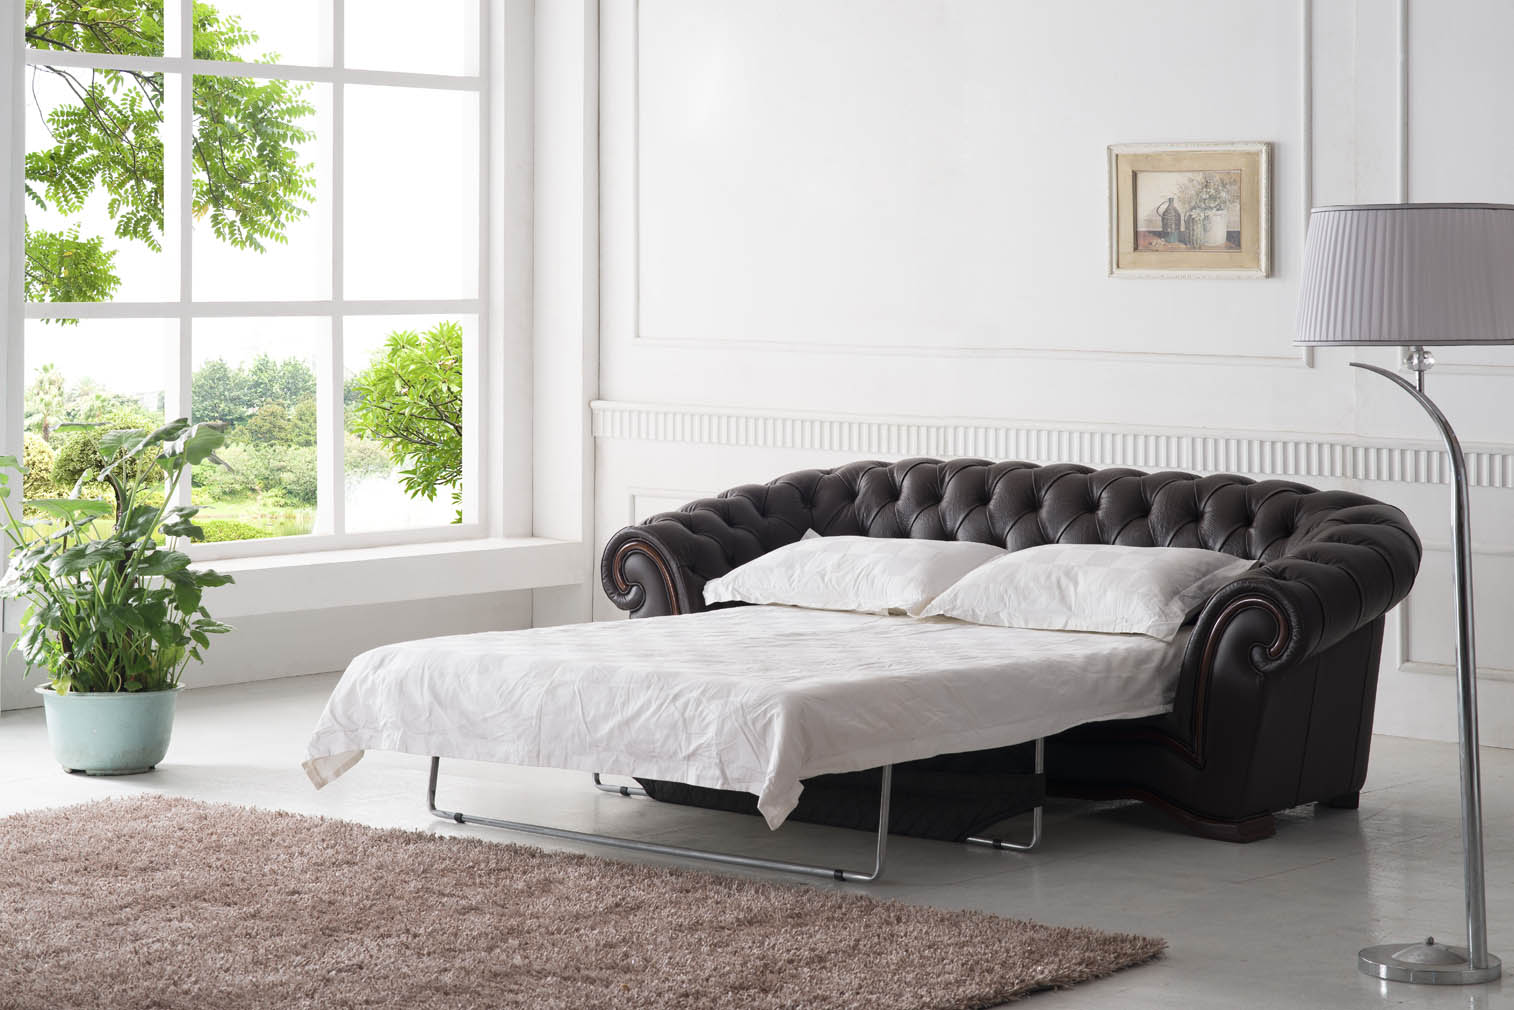 262 Full Leather, Sofa Beds, Living Room Furniture